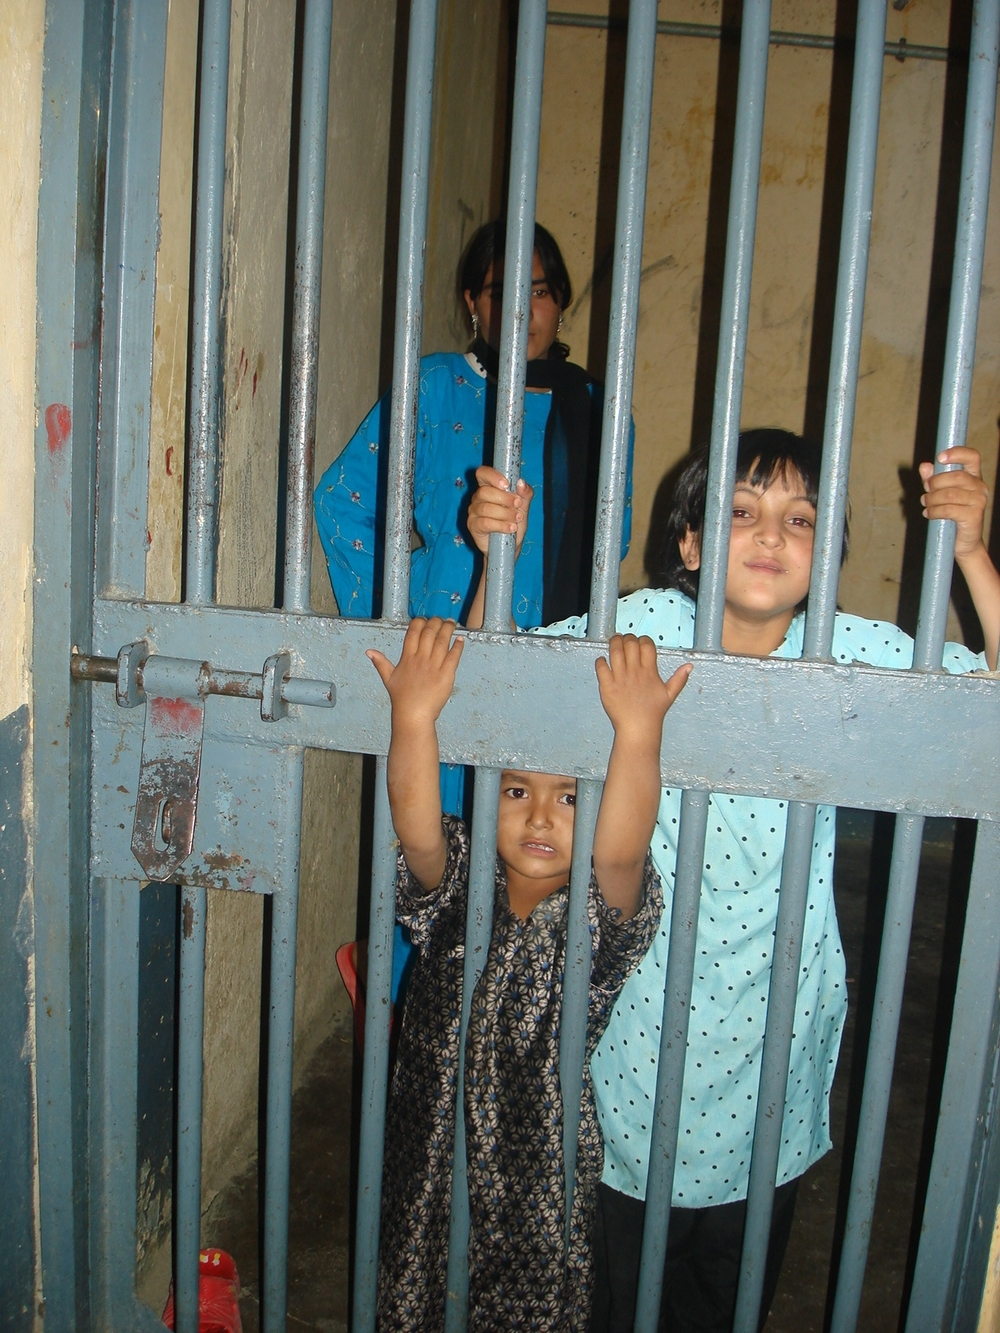 The number of children staying with their mothers in Afghan,September 2007. prisons is extremely high, almost equal to the number of their mothers, according to UNODC.